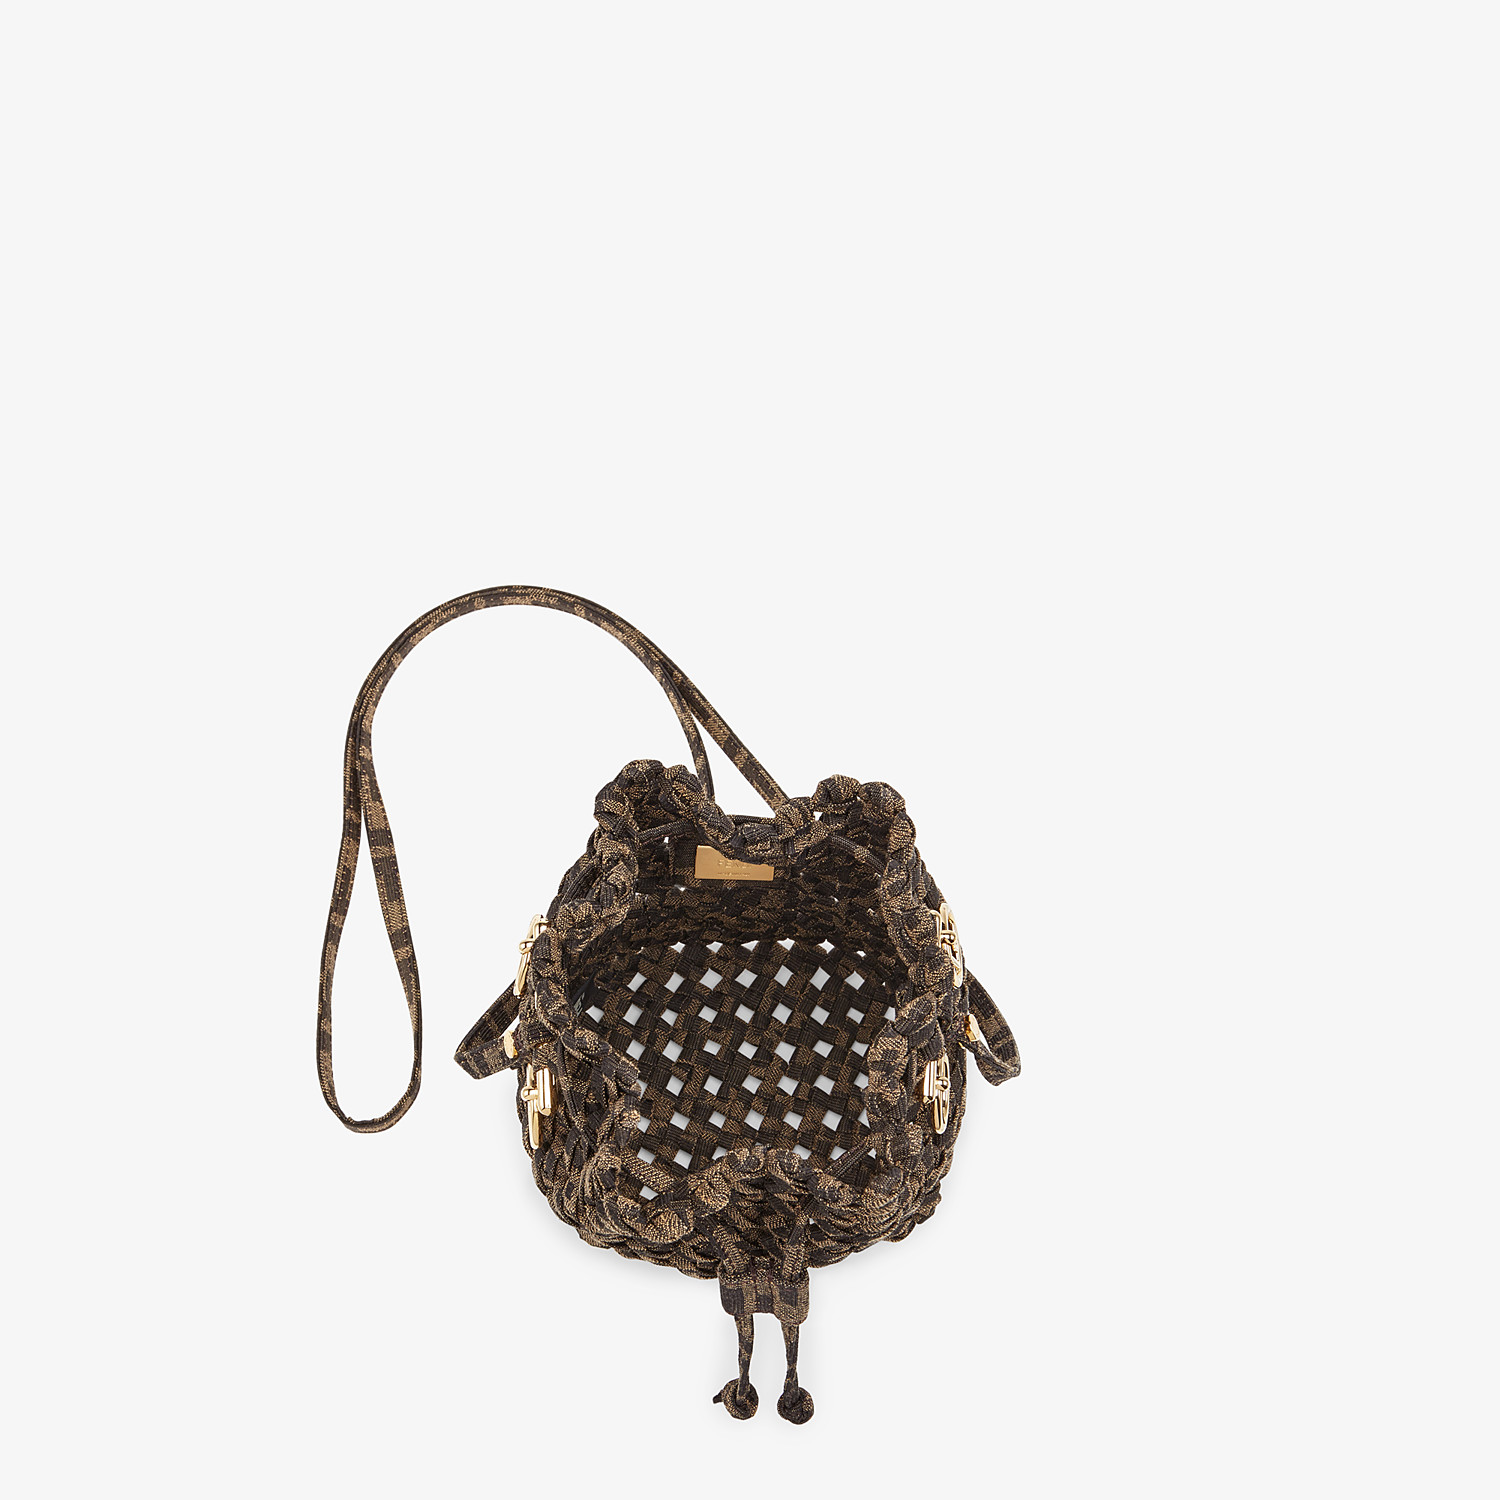 FENDI MON TRESOR - Jacquard fabric interlace mini-bag - view 5 detail